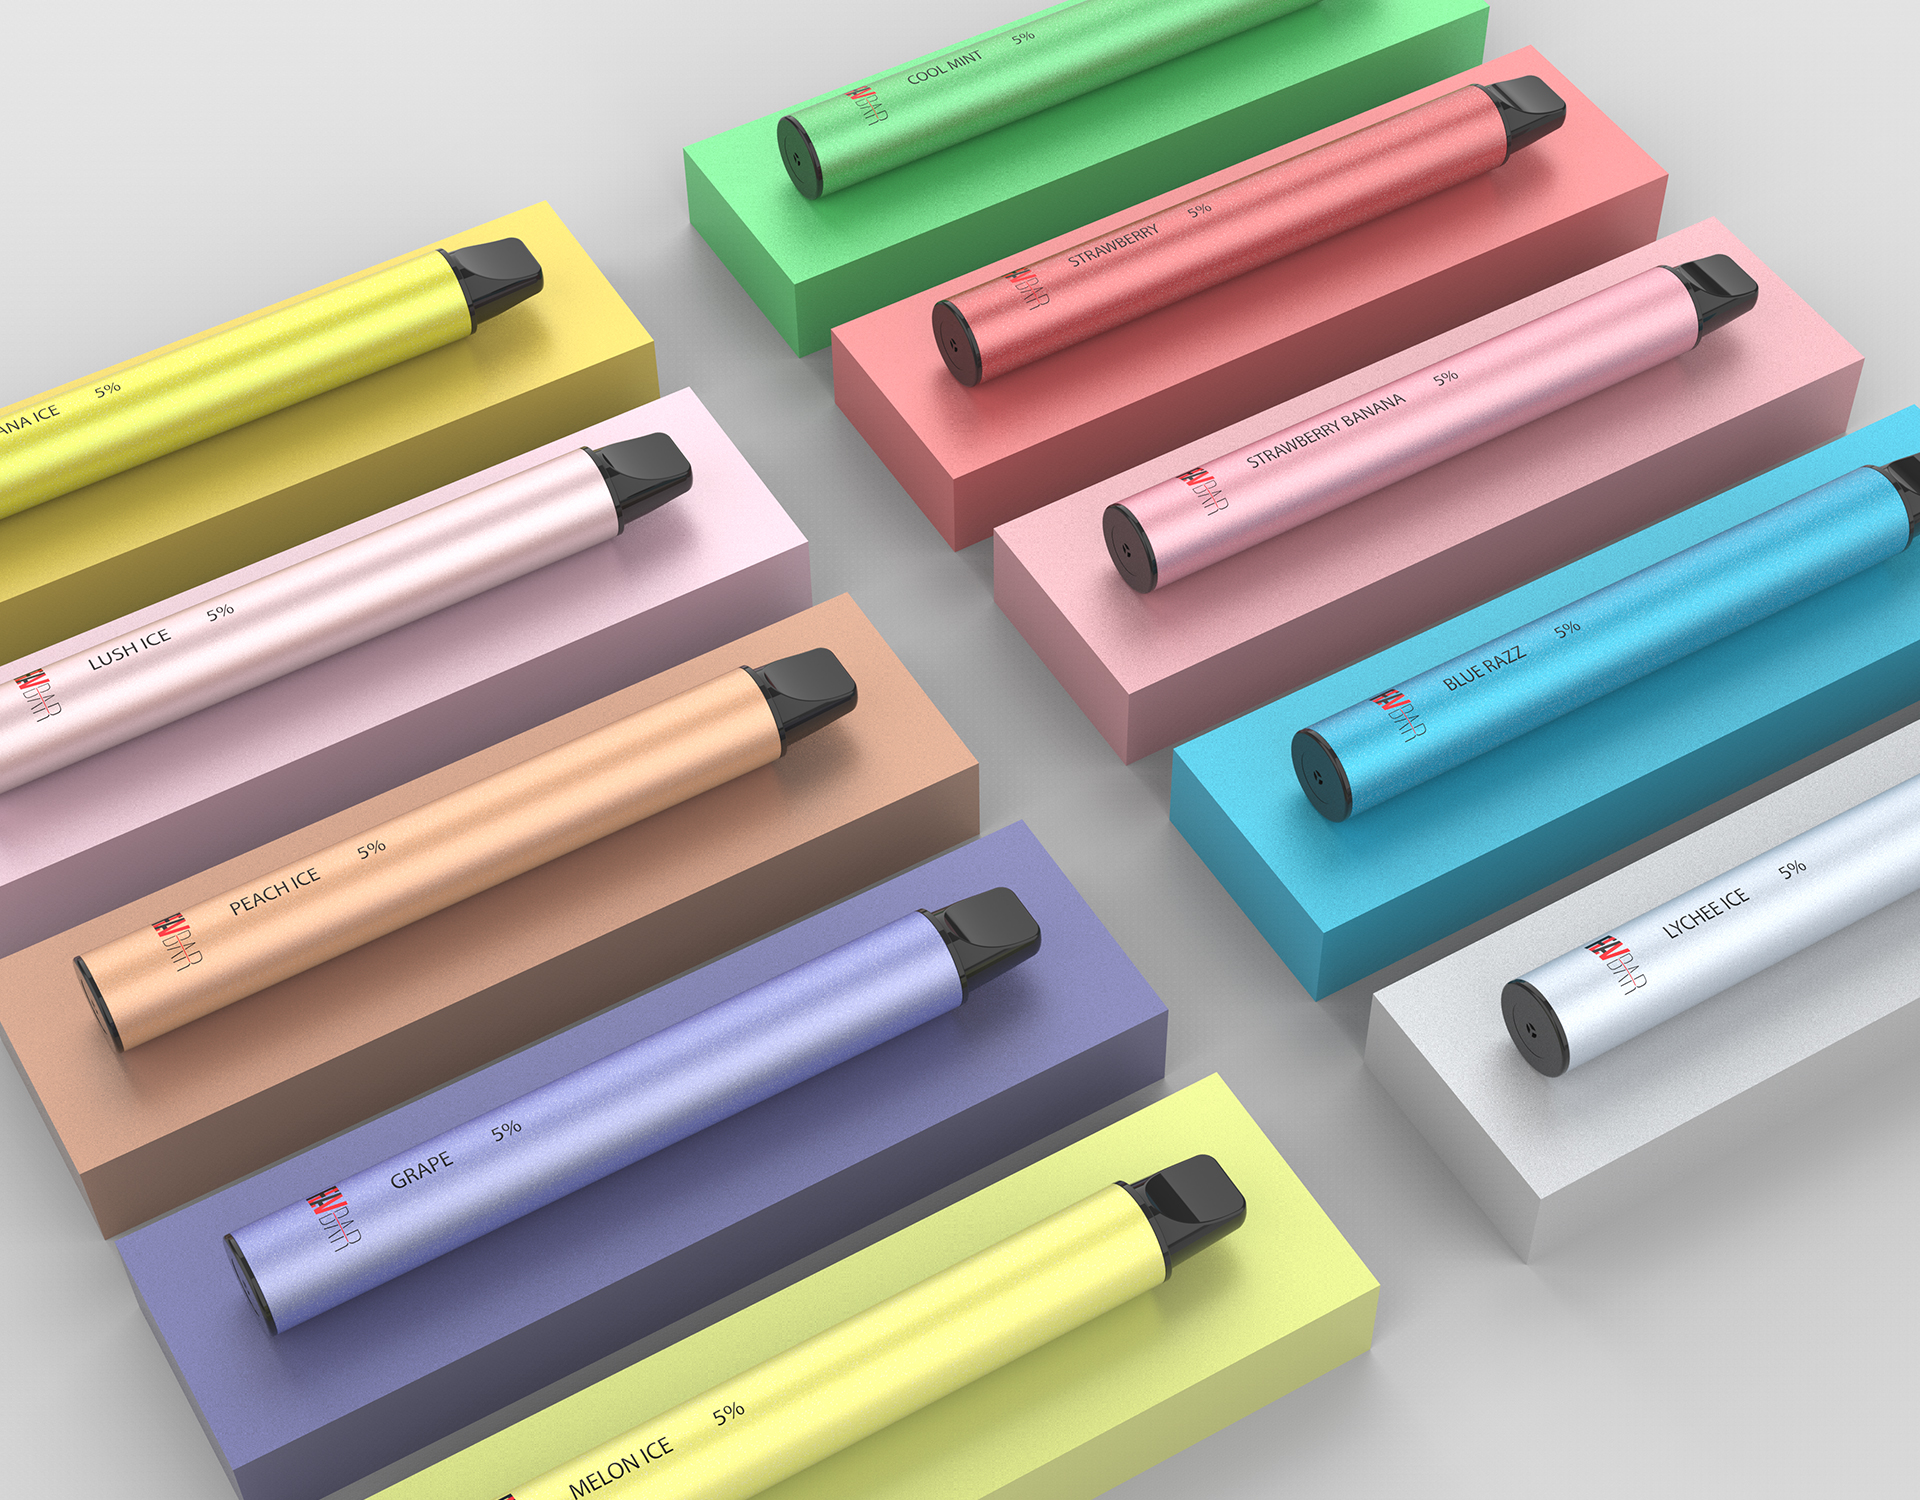 FLAVBAR v2 disposable device comes with 10 flavors.